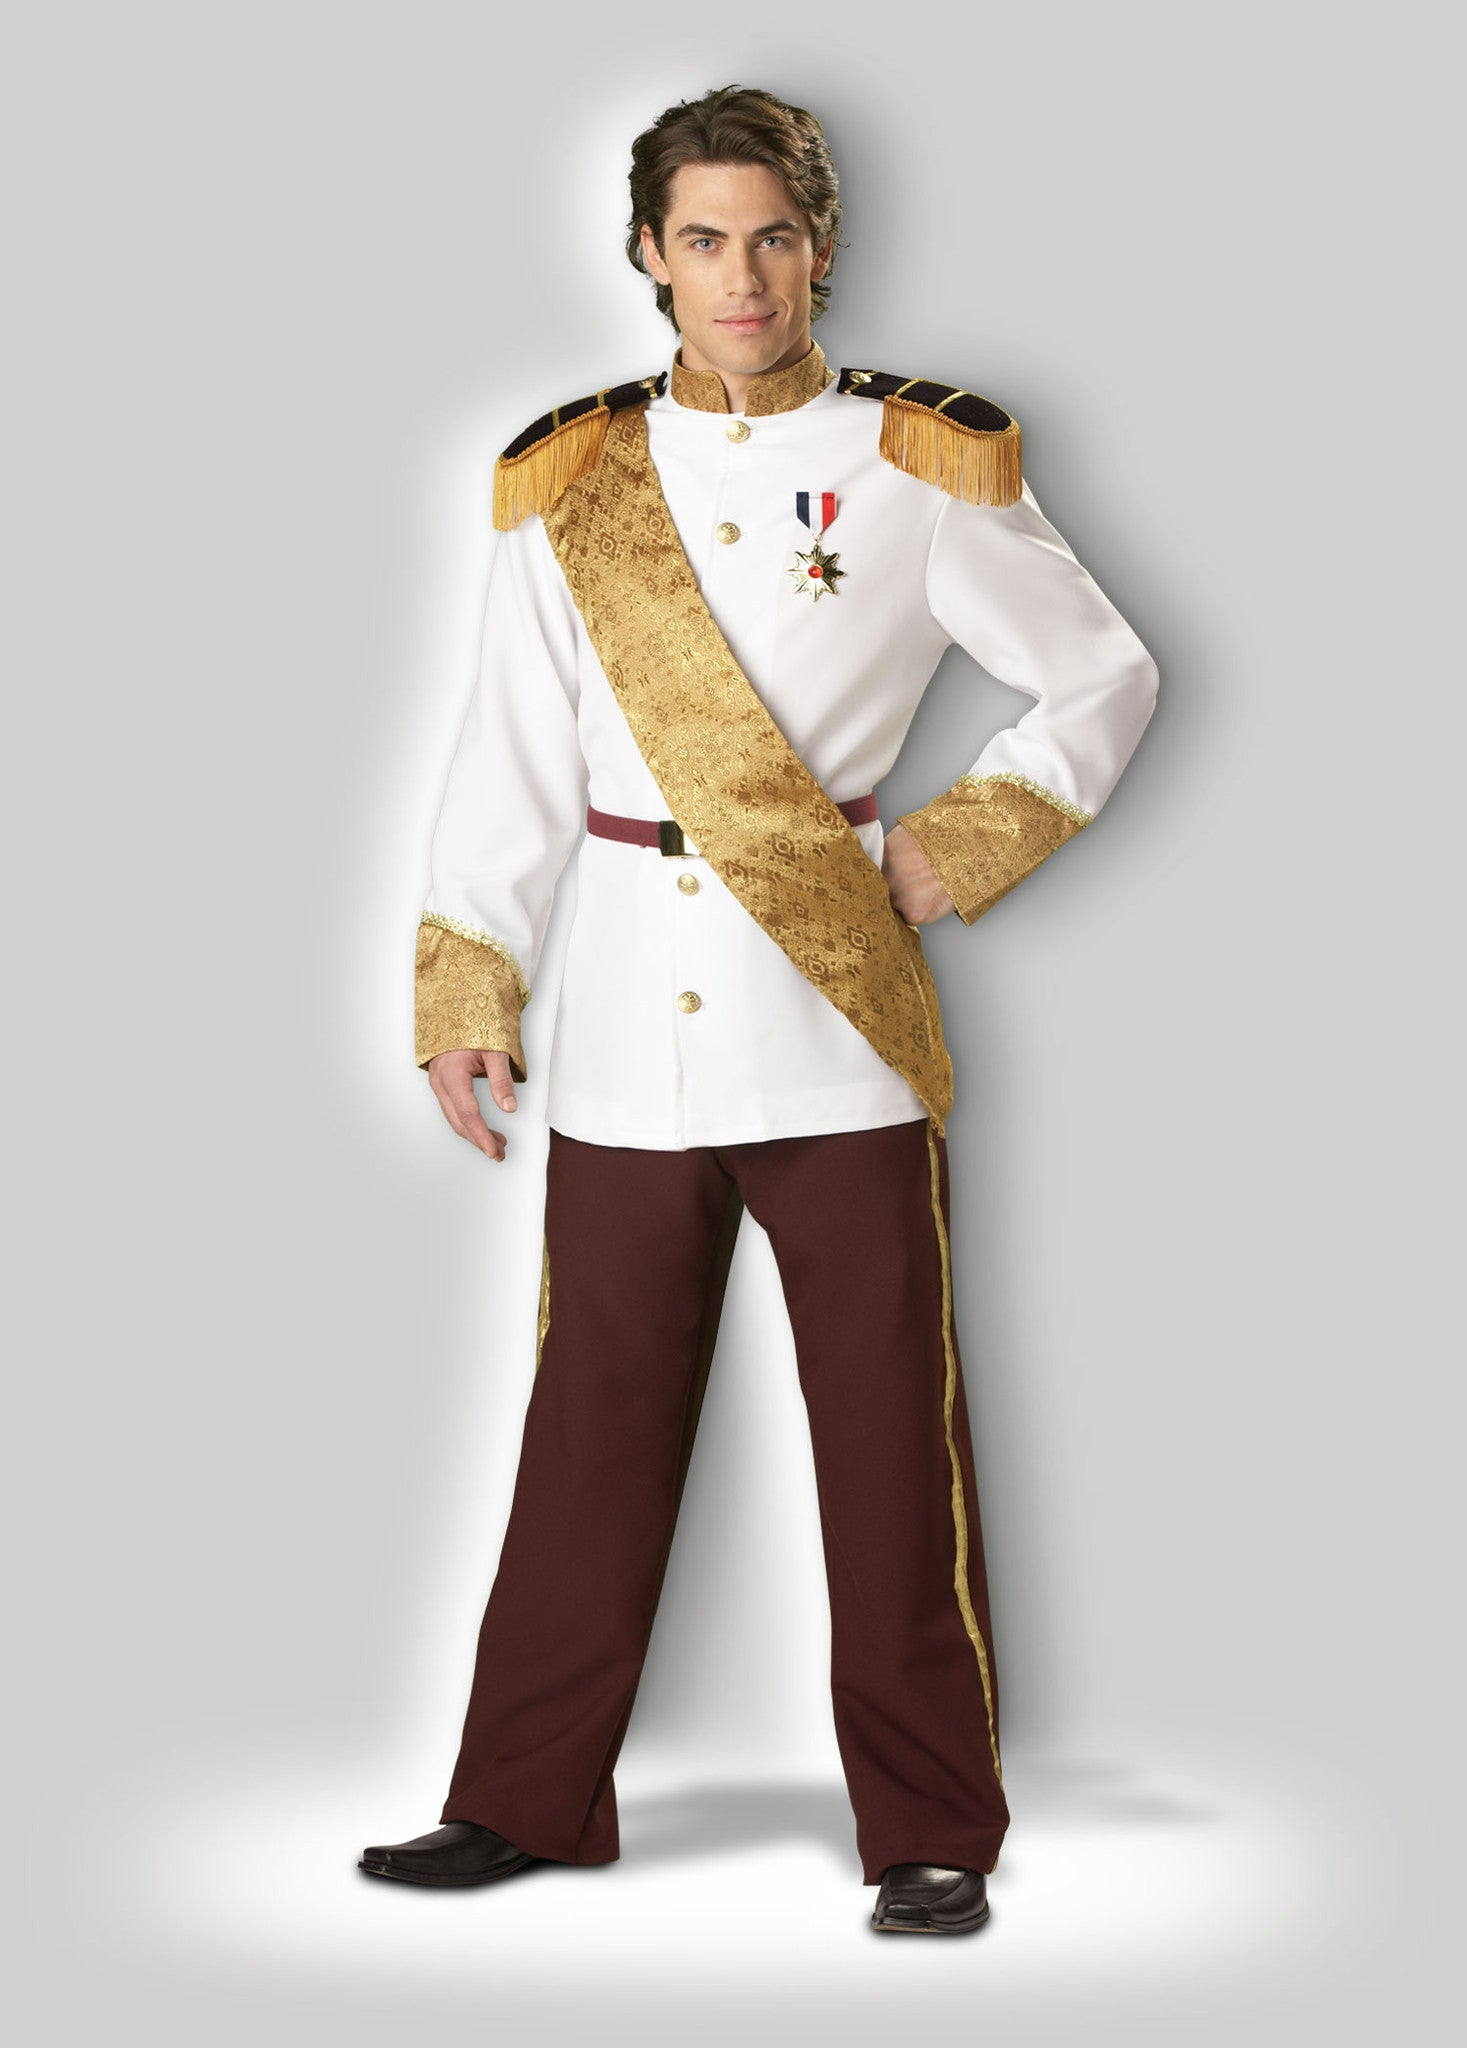 Prince Charming CM1054  sc 1 st  InCharacter Costumes & Prince Charming Deluxe Adult Costume u2013 InCharacter Costumes